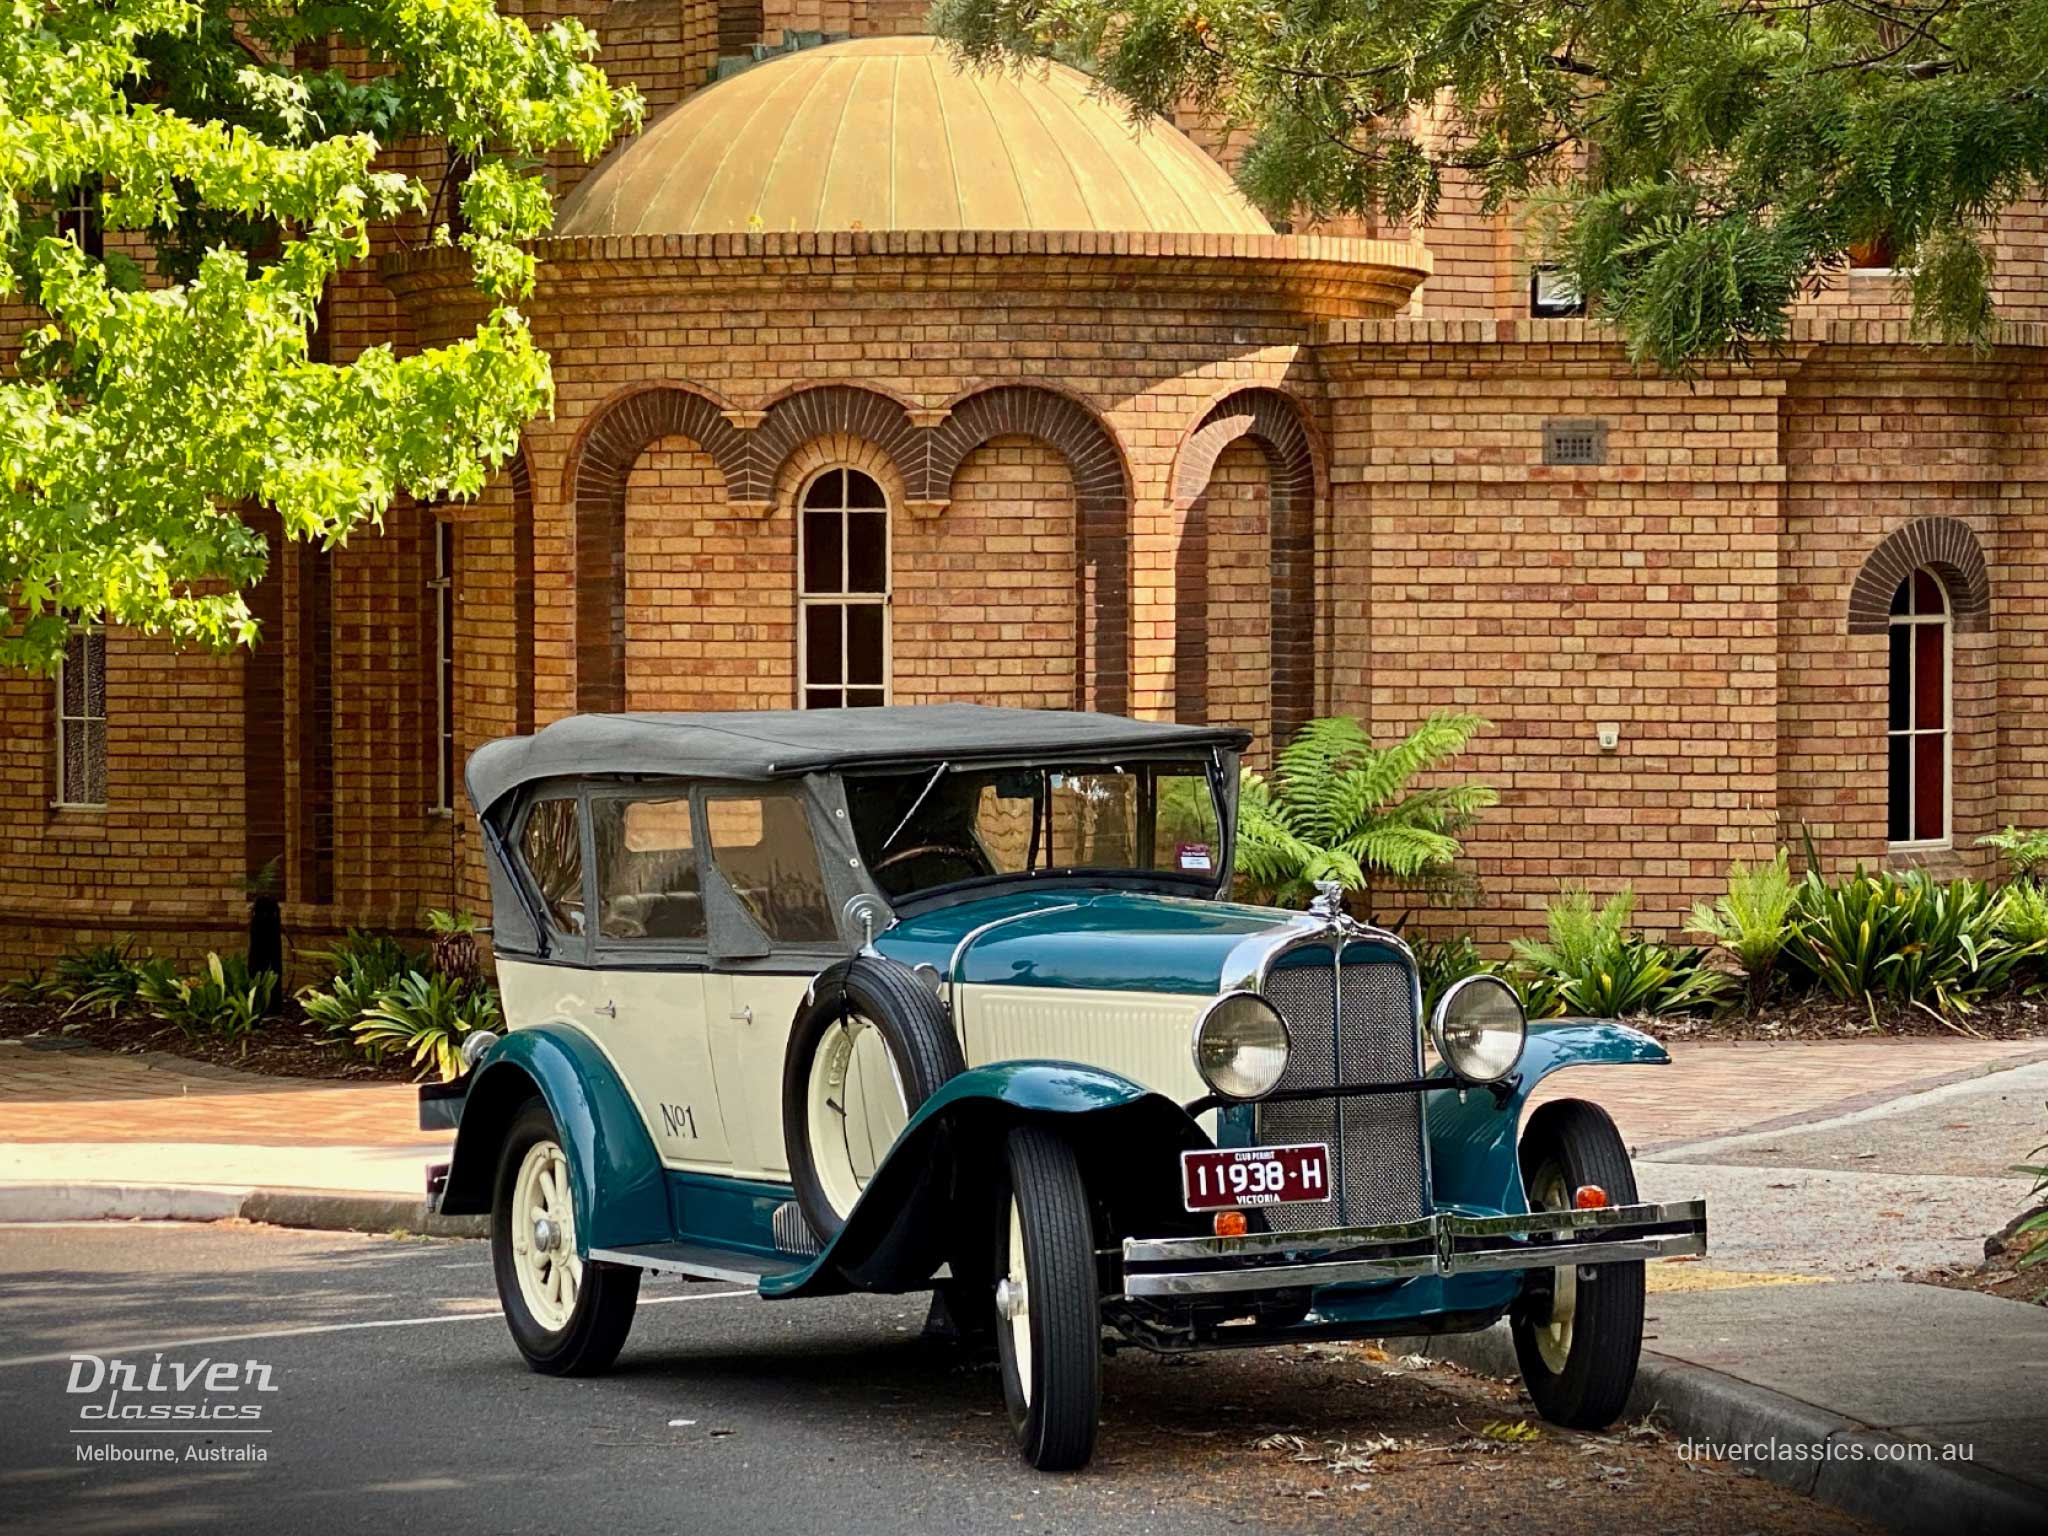 1929 Pontiac 29-6 car, front and side, Camberwell VIC, photo taken December 2019